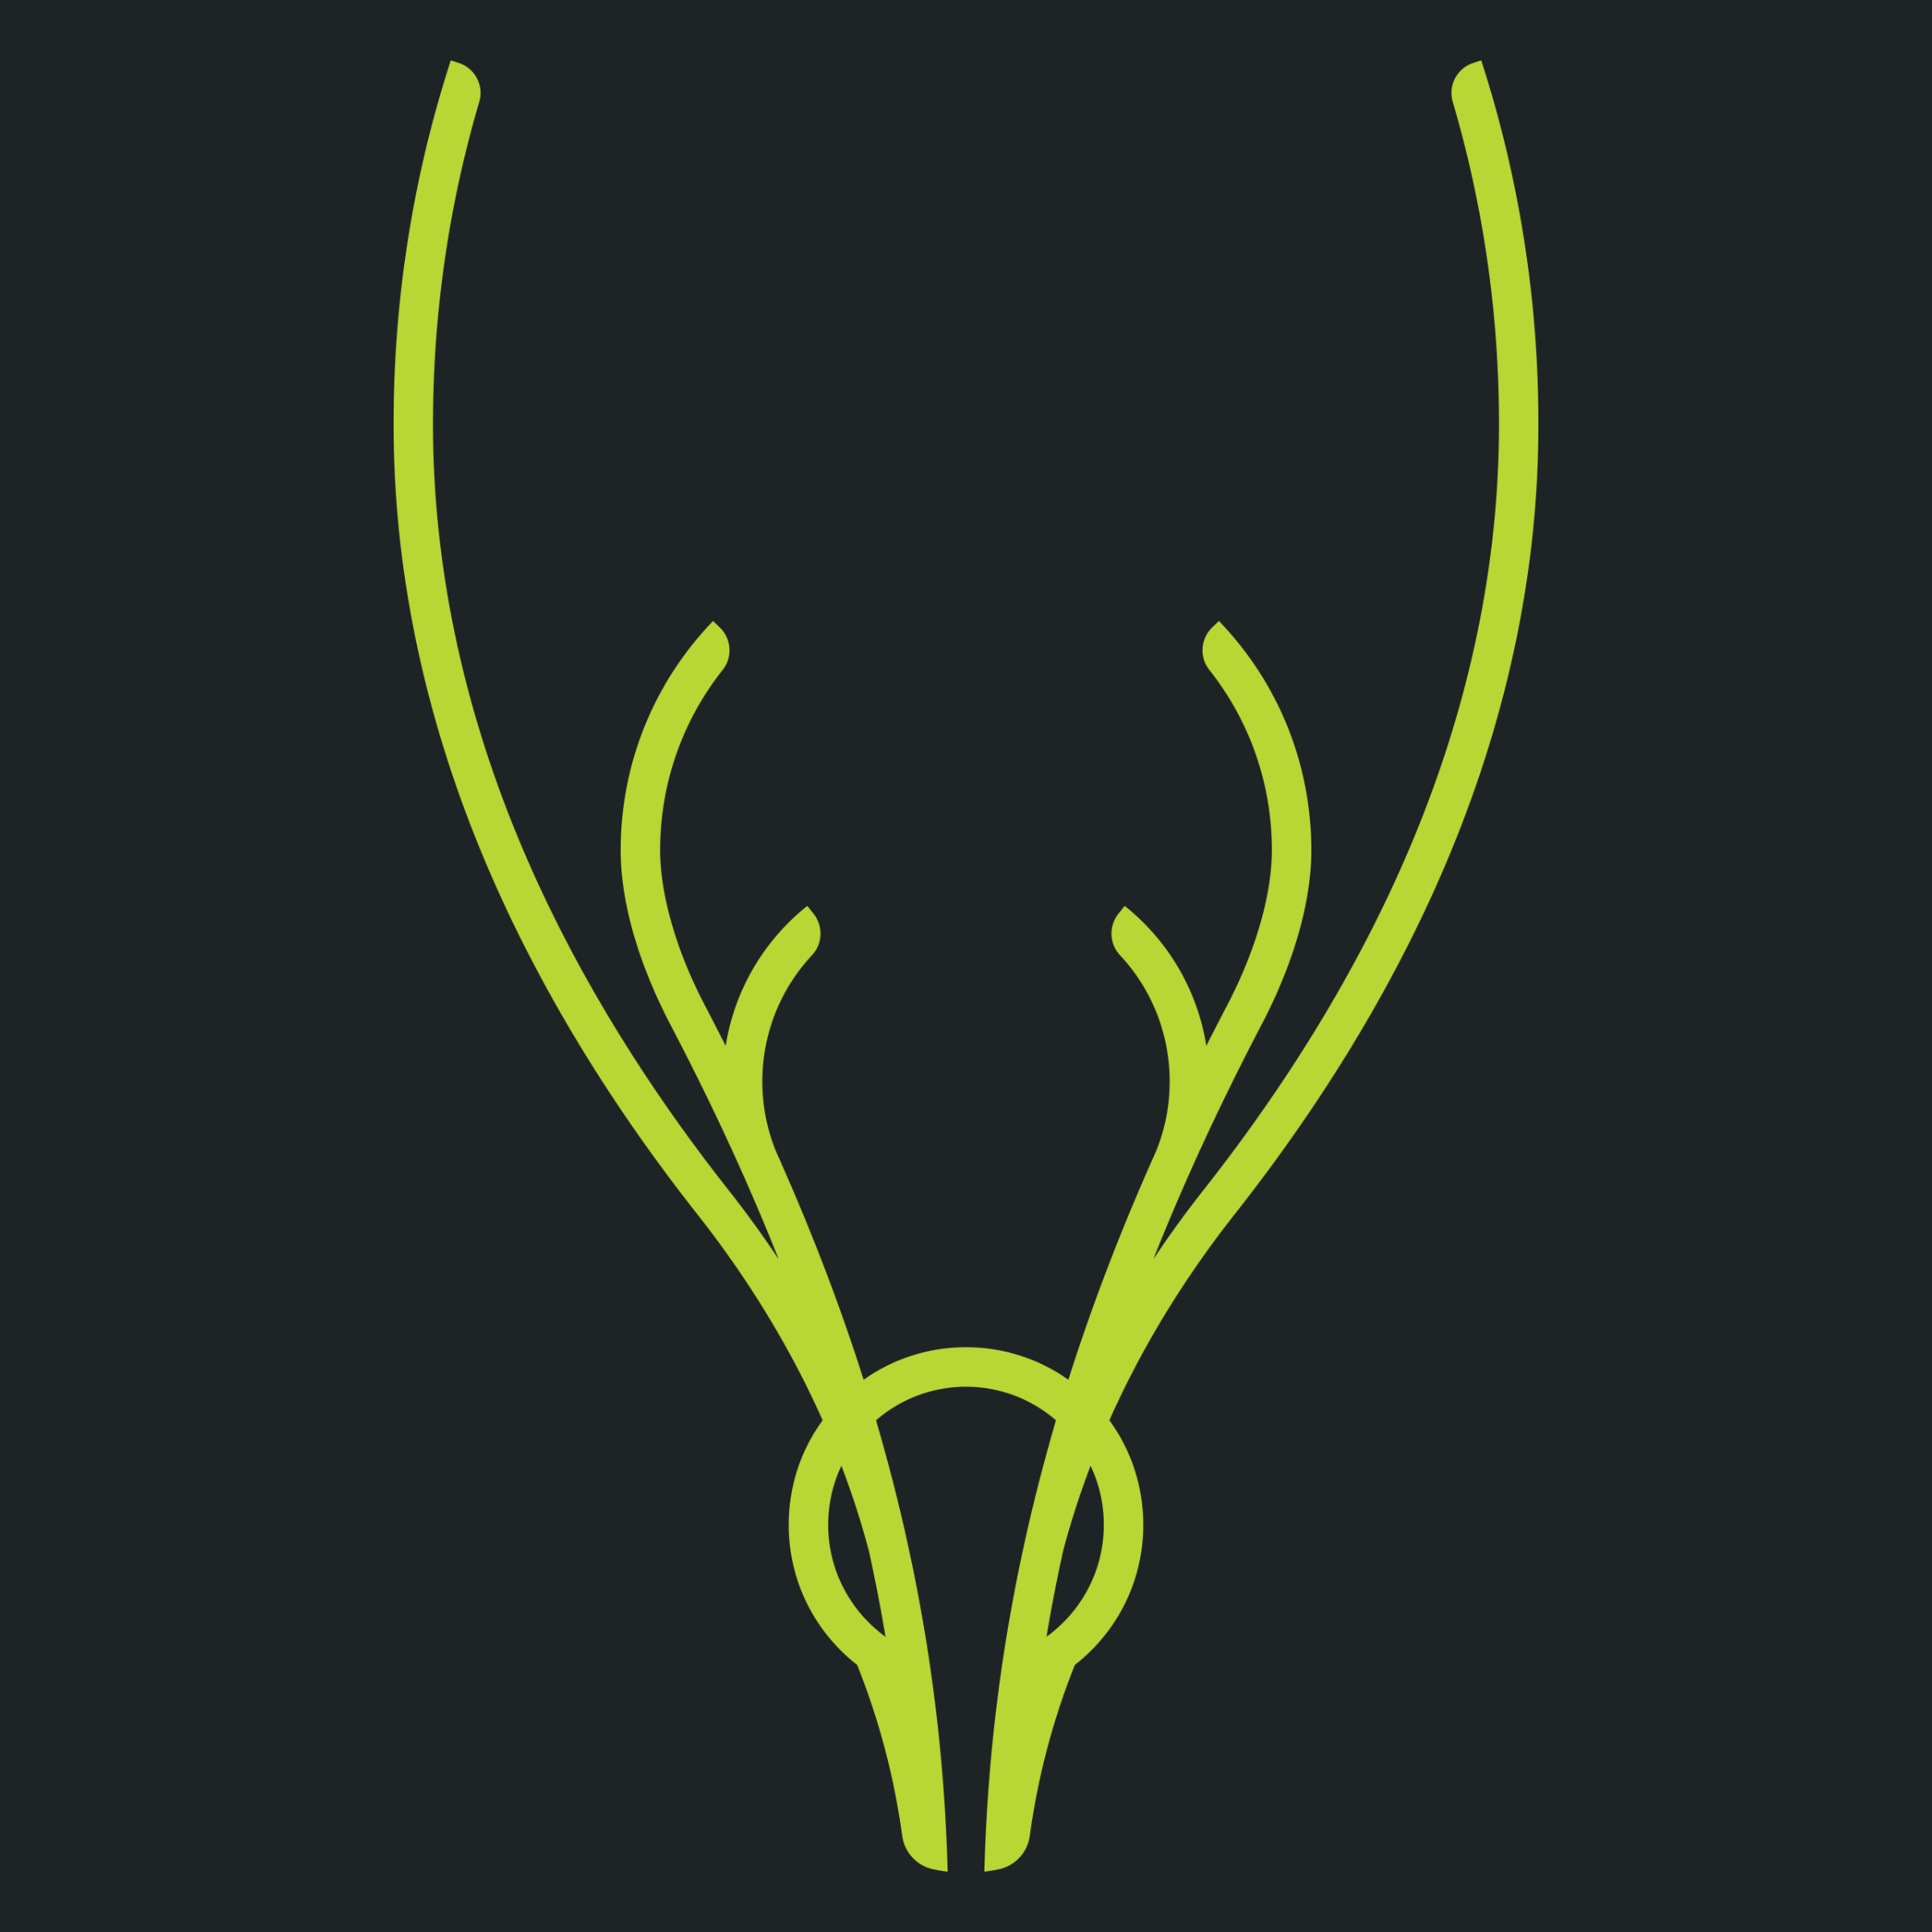 Neon Antlers